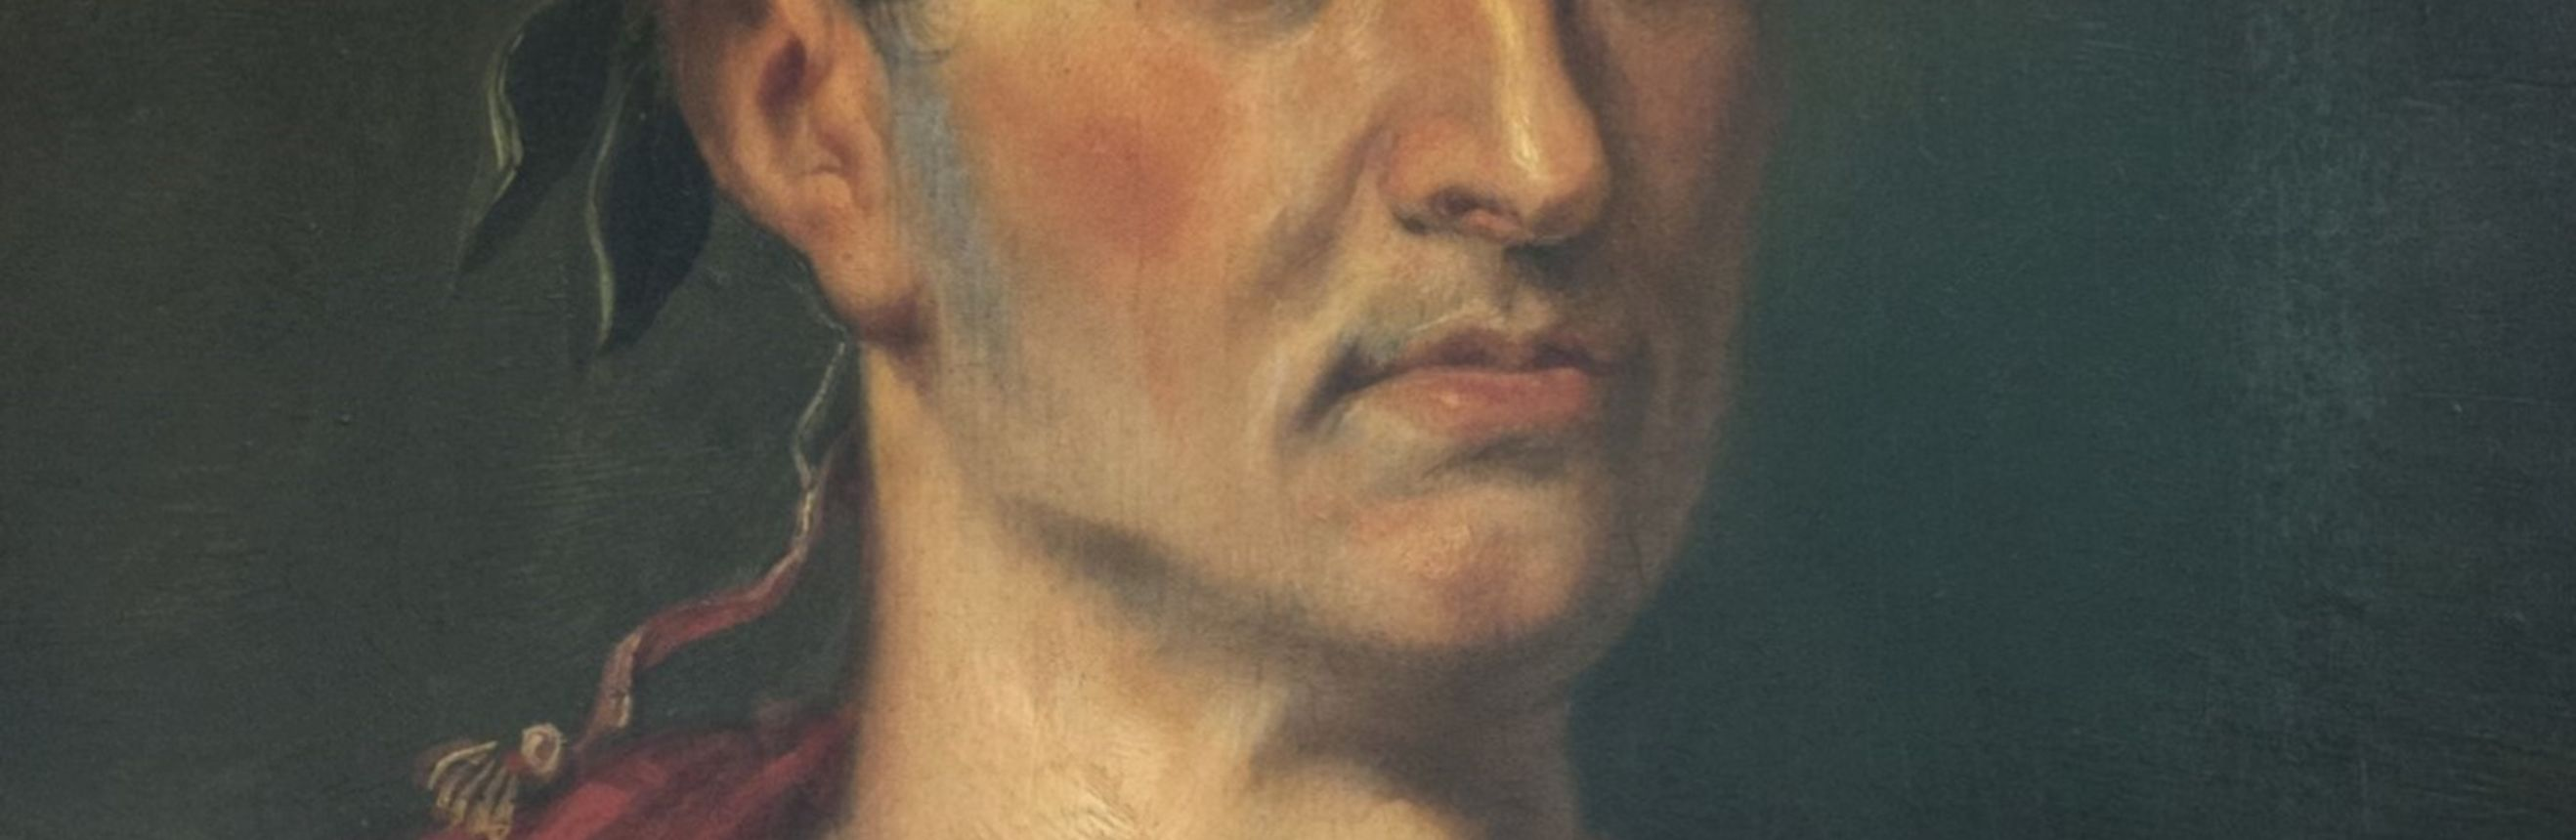 The cover for the Standard Ebooks edition of Julius Caesar, by William Shakespeare